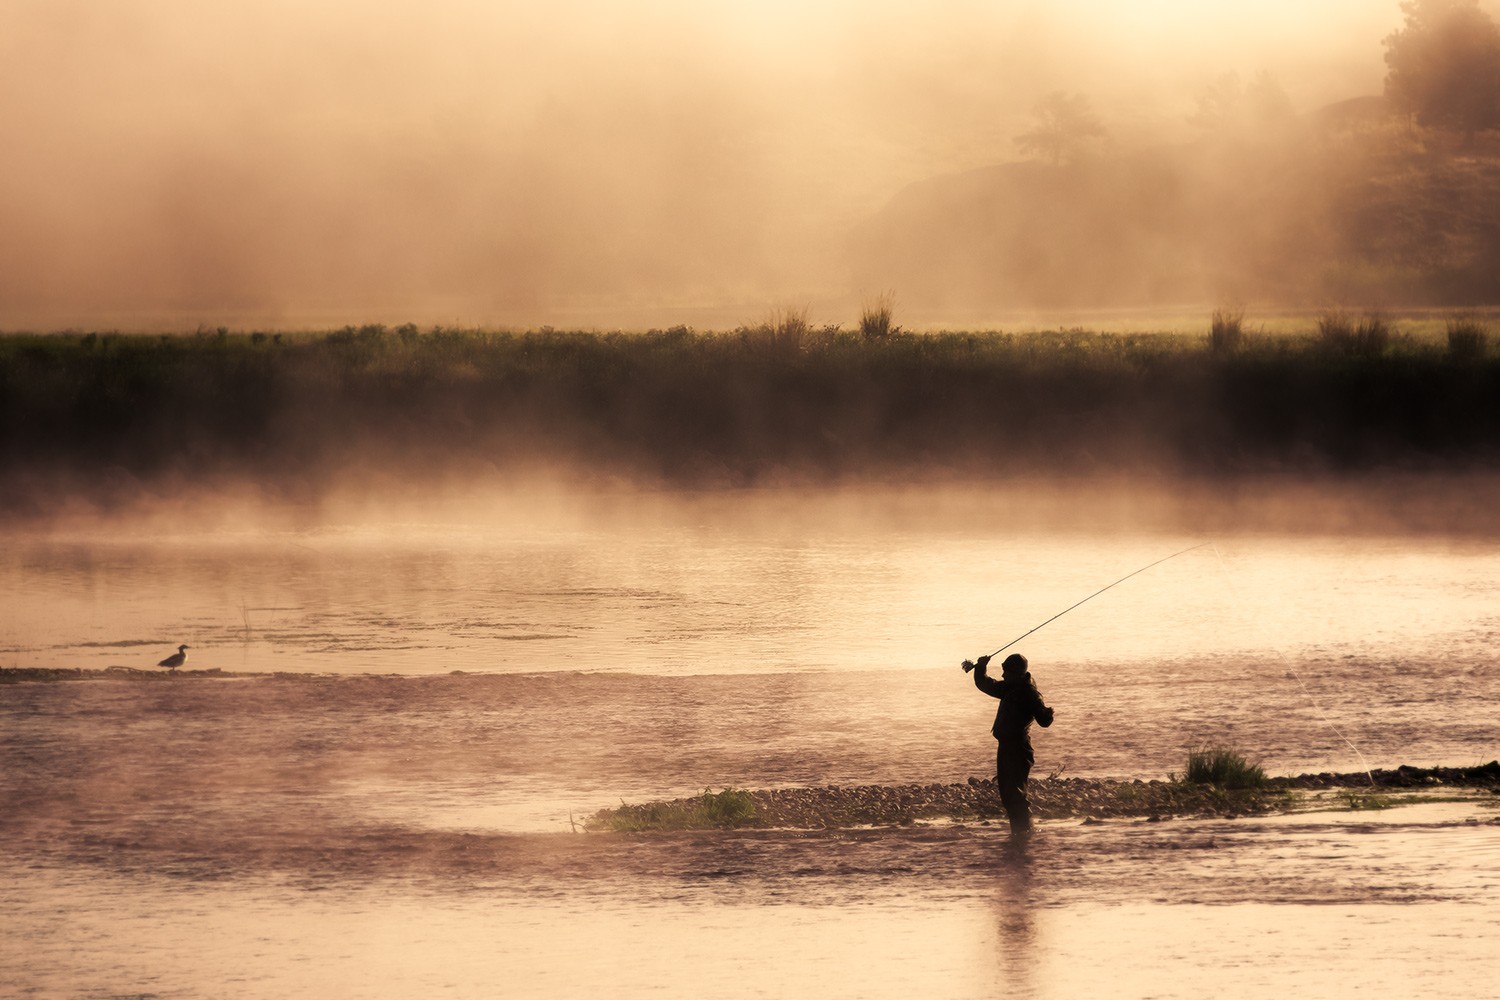 A silhouette of a fisherman casting his rod into the steamy Missouri River near Cascade, Montana. → Buy a Print